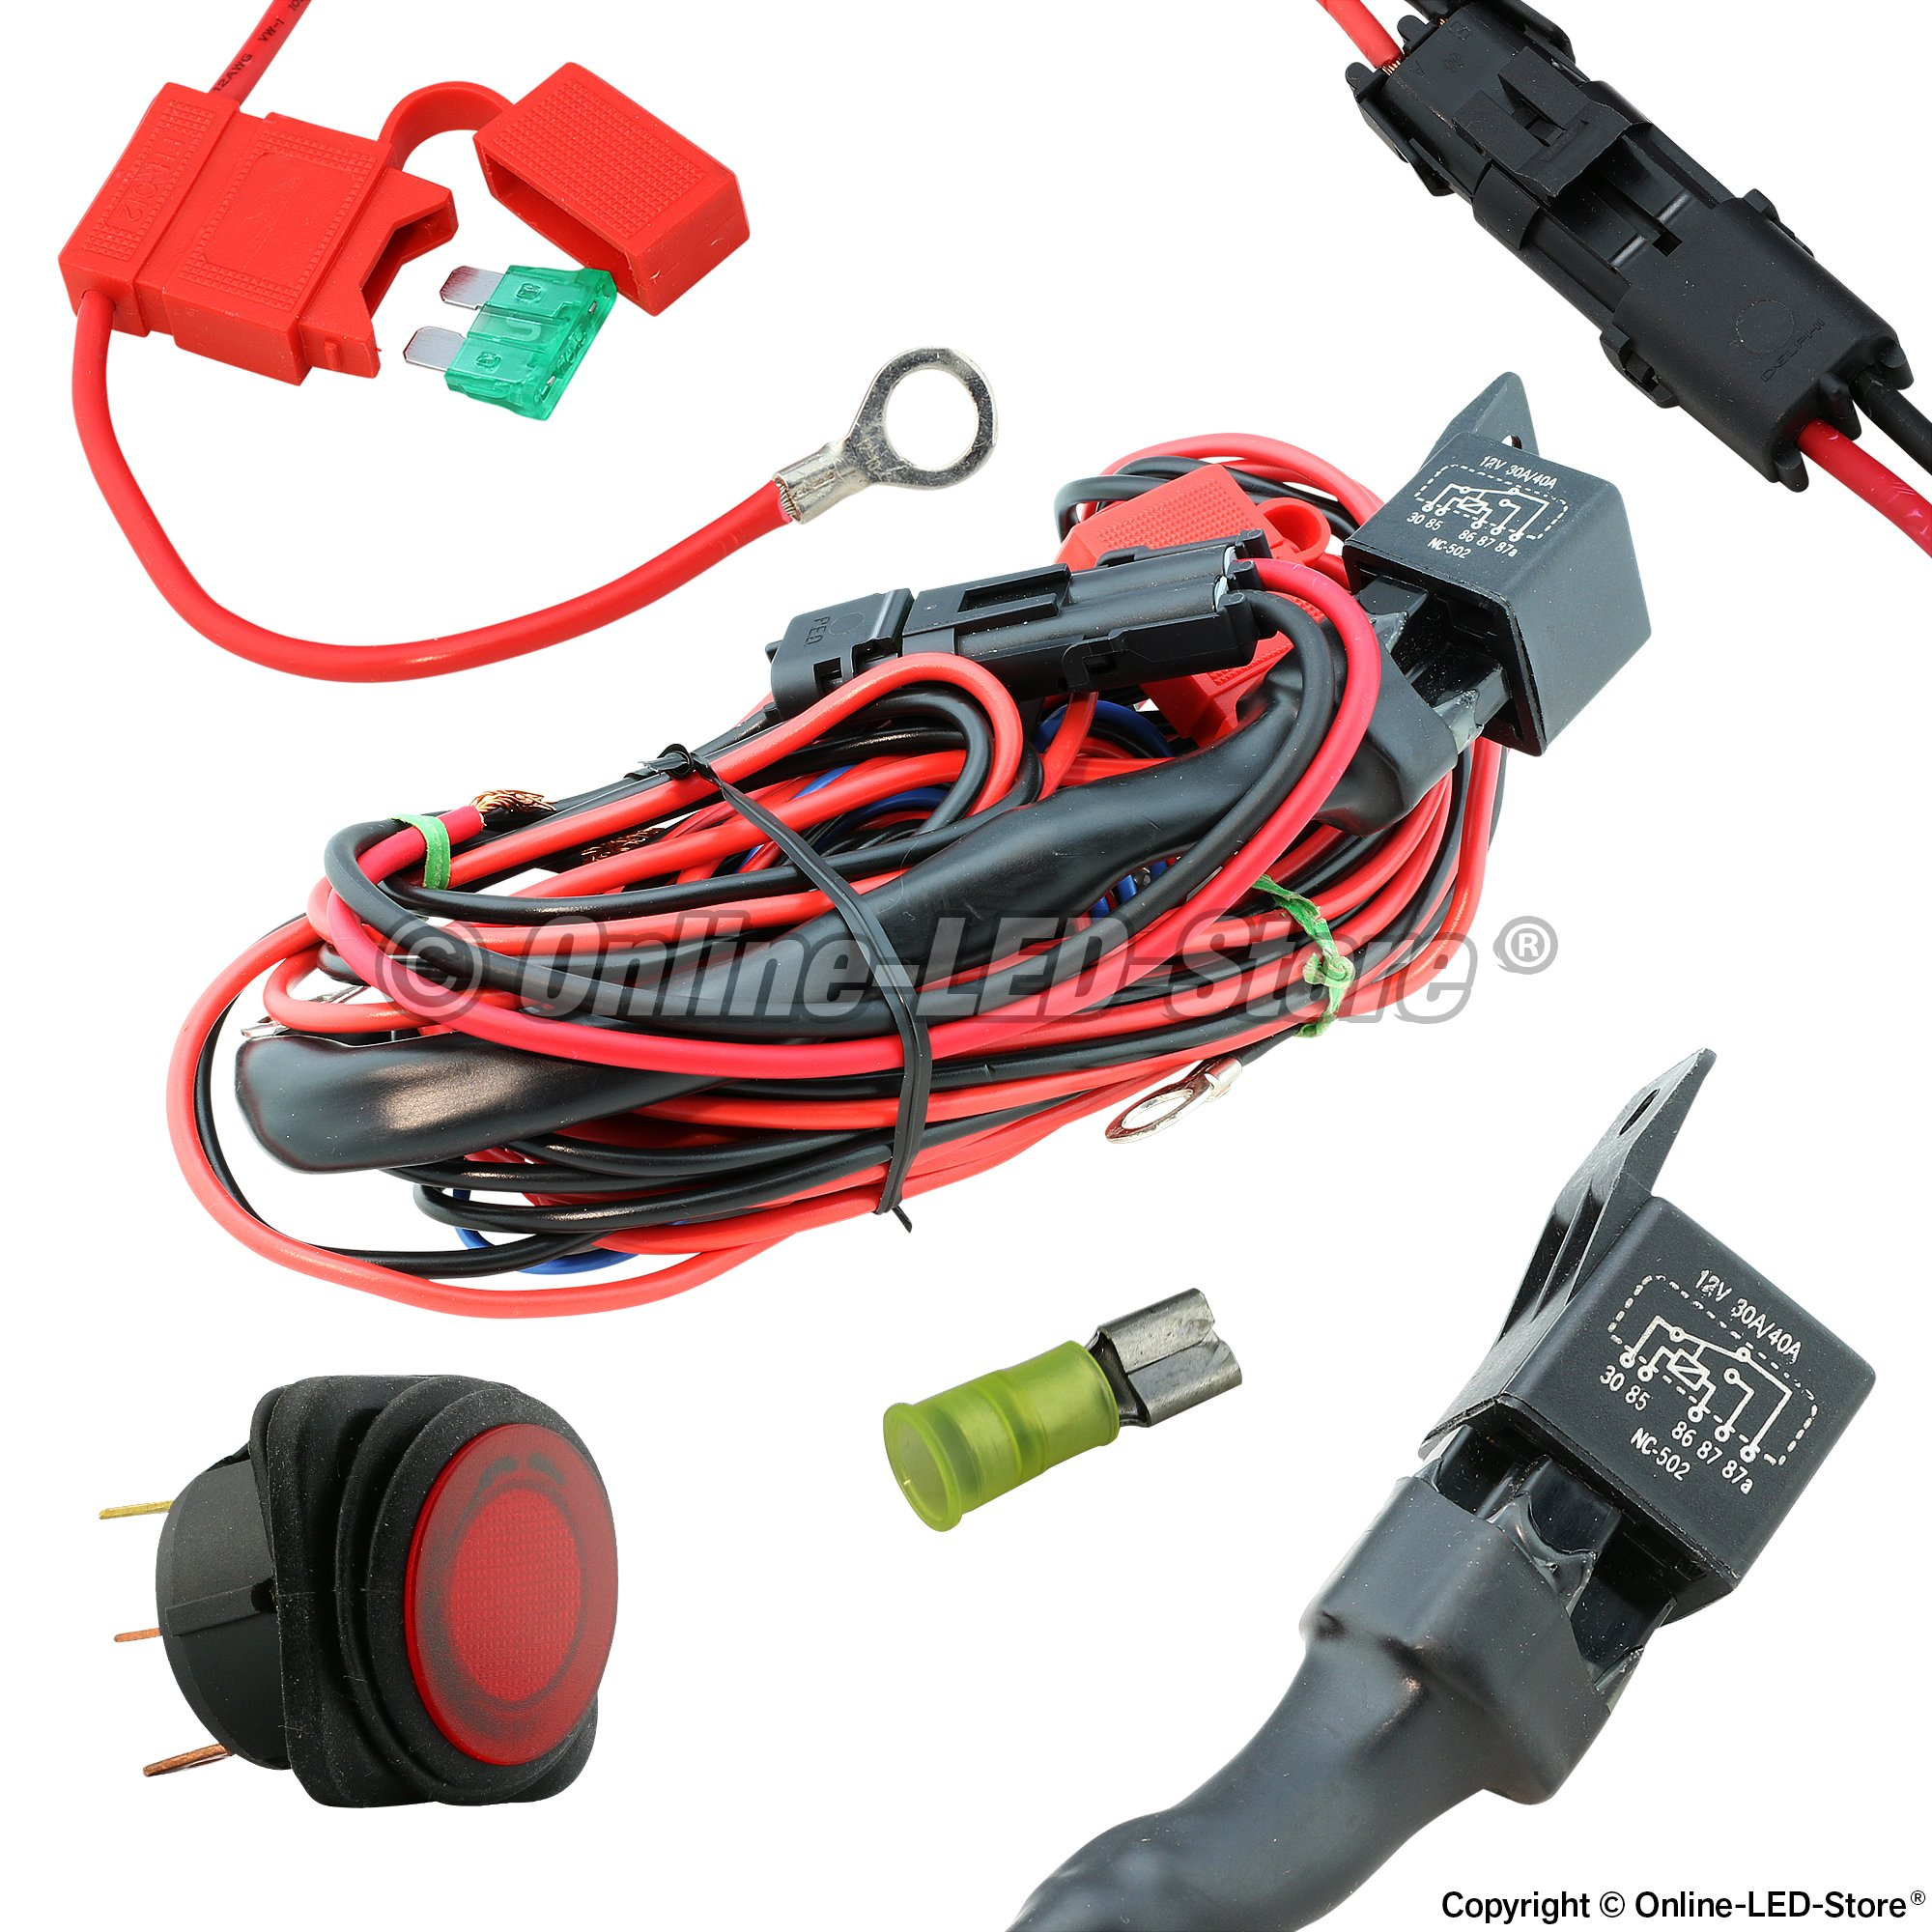 image_ORZLEDCTL002 MAINPC WEB_1 led wiring harness vehicle wiring harness online led store waterproof wiring harness at fashall.co